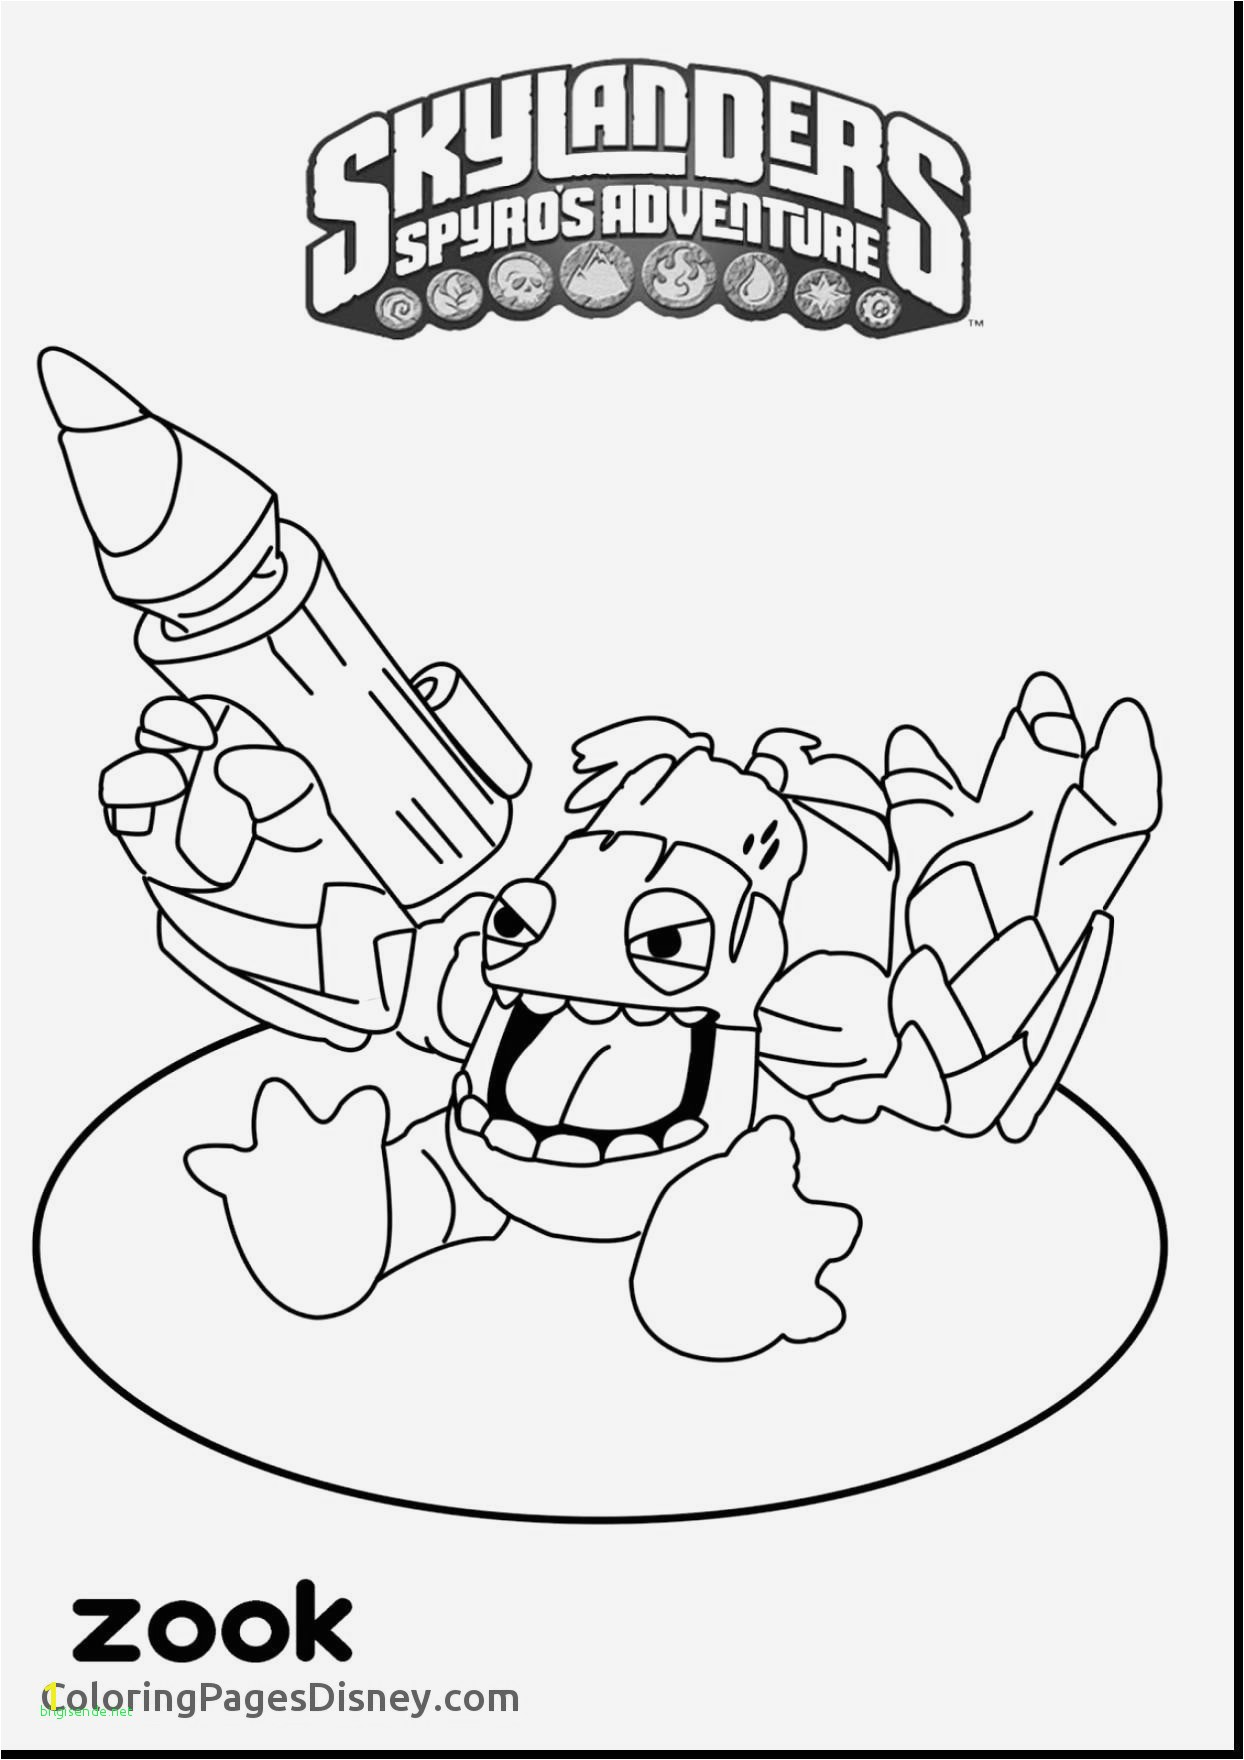 Disney Printable Coloring Pages Pdf Awesome Free Printable Disney Coloring Books Pdf